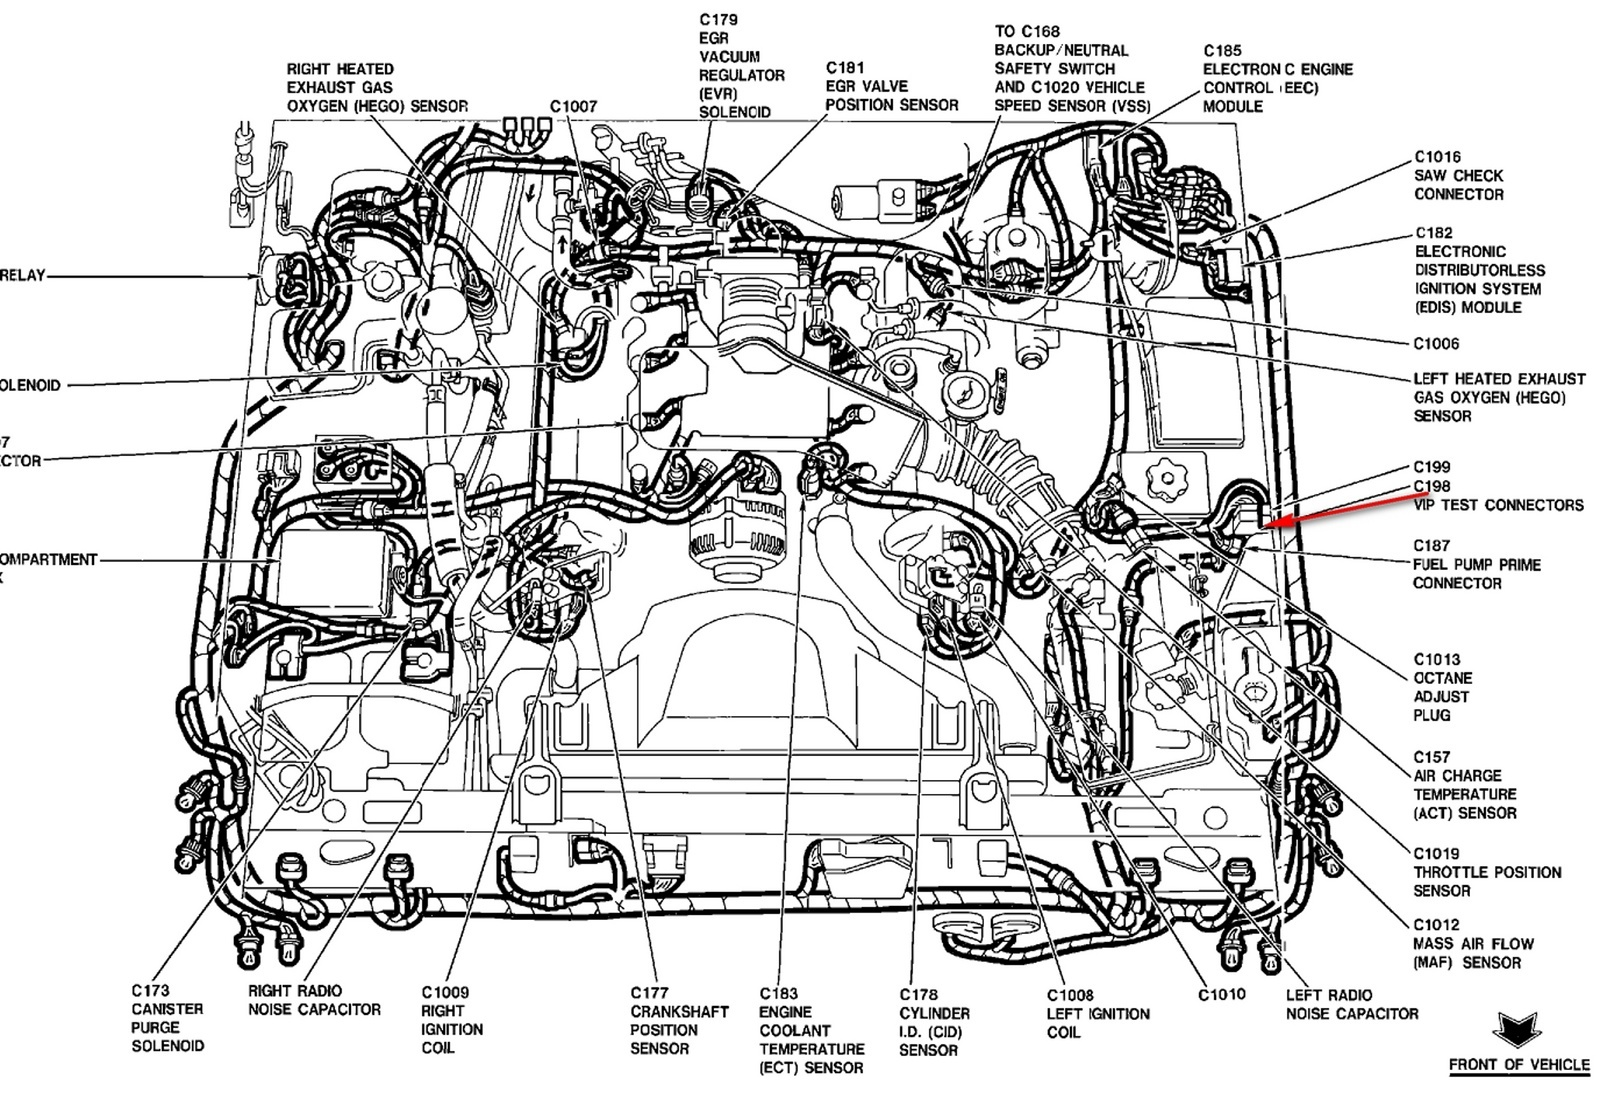 hight resolution of 2002 crown victoria engine diagram data wiring diagram rh 10 hrc solarhandel de 2000 crown victoria engine diagram 2003 ford crown victoria fuse box diagram